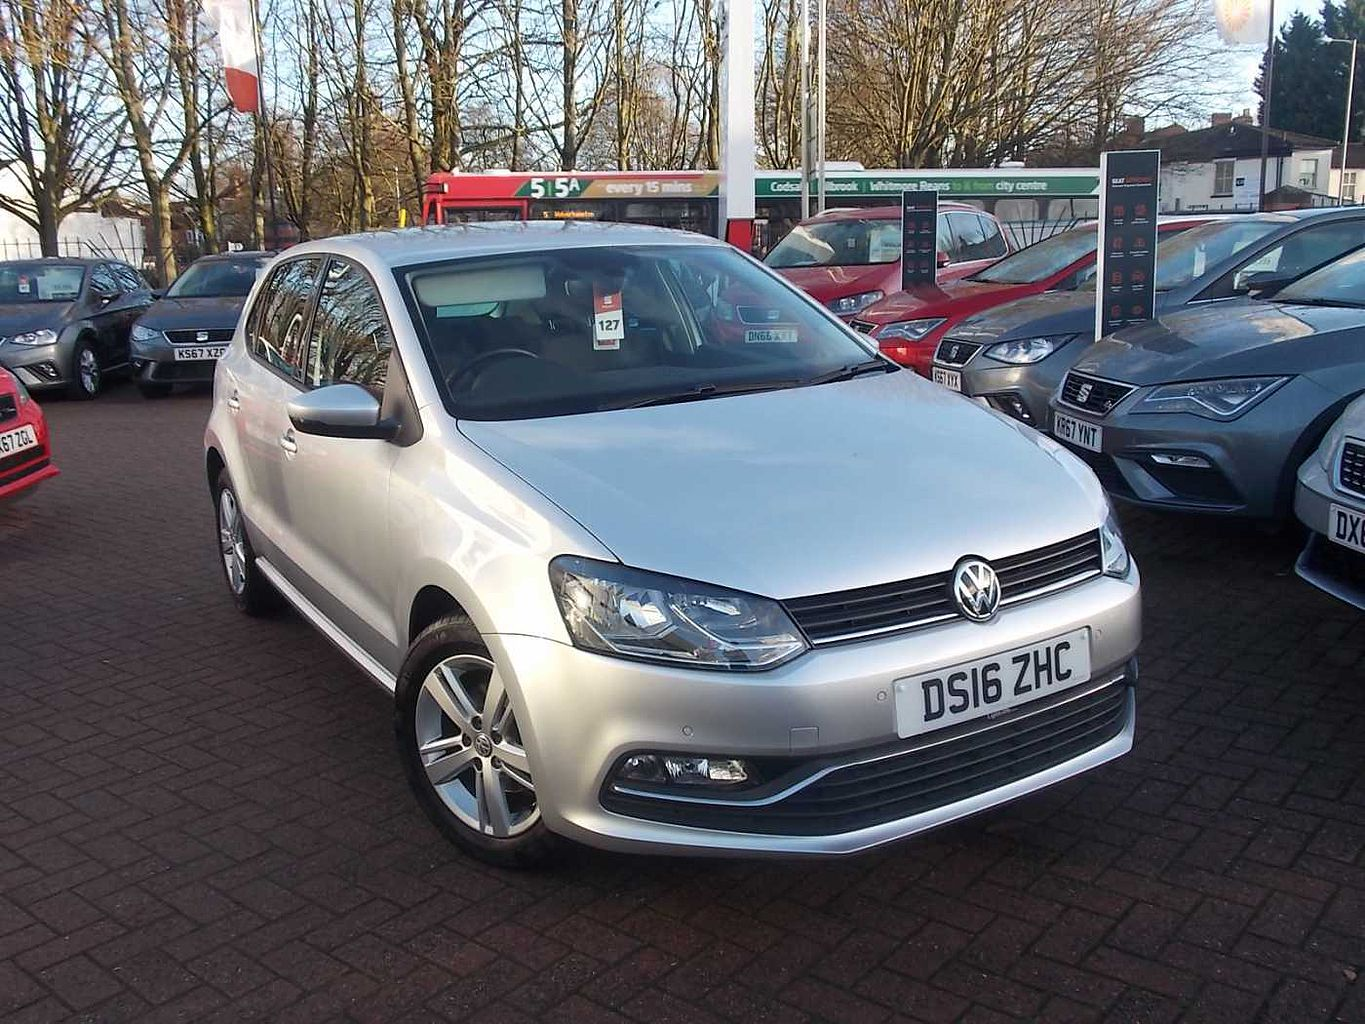 2016 Silver Volkswagen Polo MK5 Hatchback 5-Dr 1.2 TSI Match 90PS, Petrol, Manual